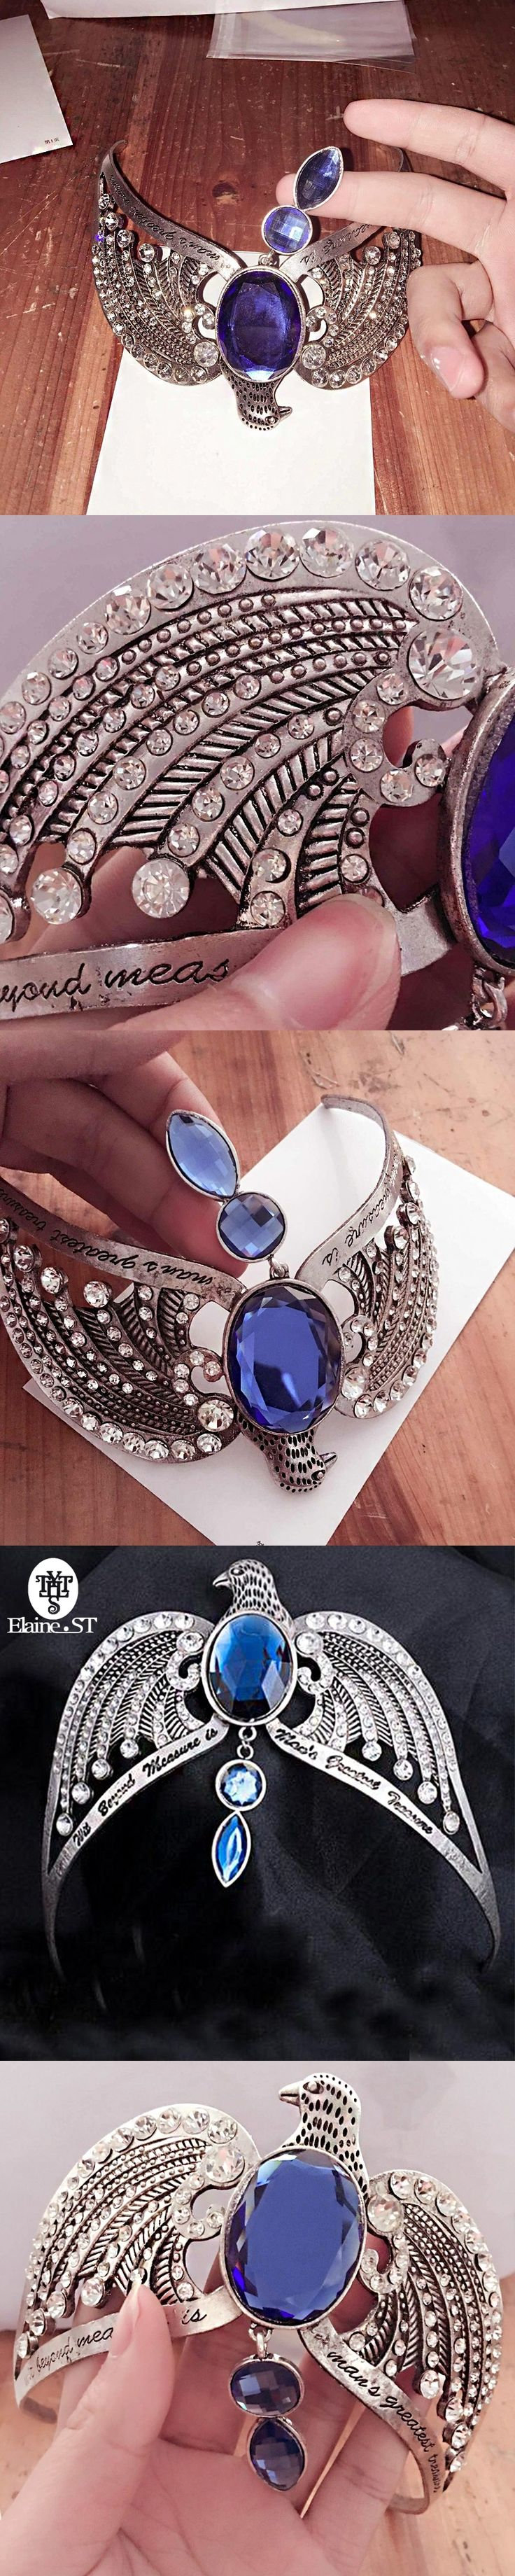 Hermione Jane Granger The Eagle Crown Ravenclaw lose Crown Horcrux Bridal Hairbands Crystal Headbands women Wedding Accessories